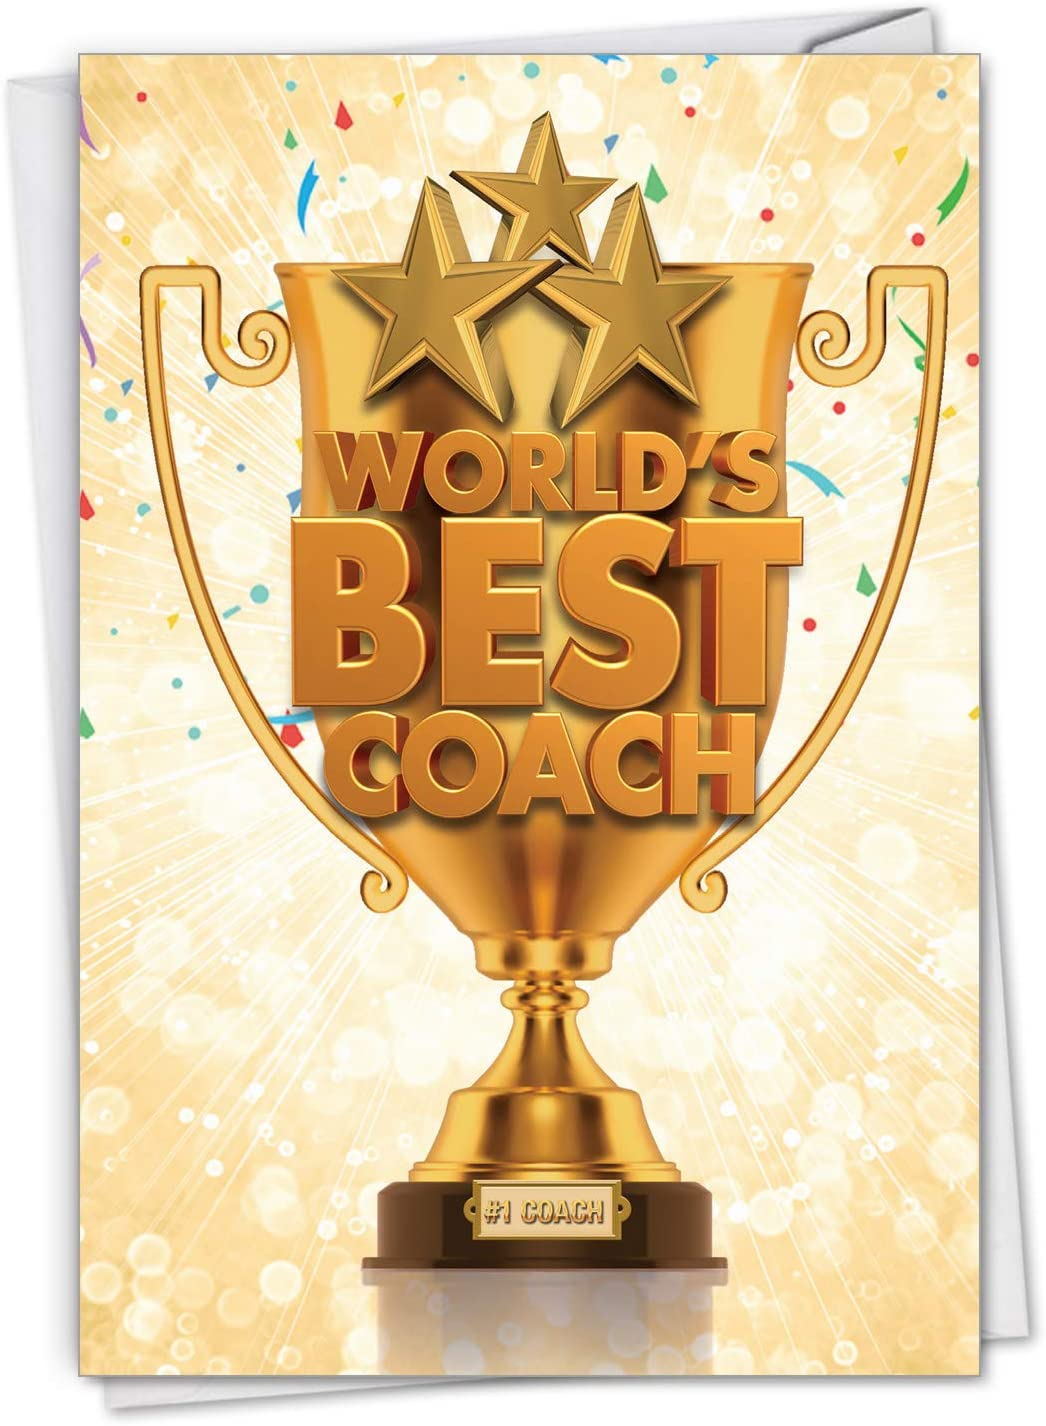 NobleWorks, World's Best Coach - Thank You Greeting Card for Coaches - Sports, Team Gratitude C3117TYG